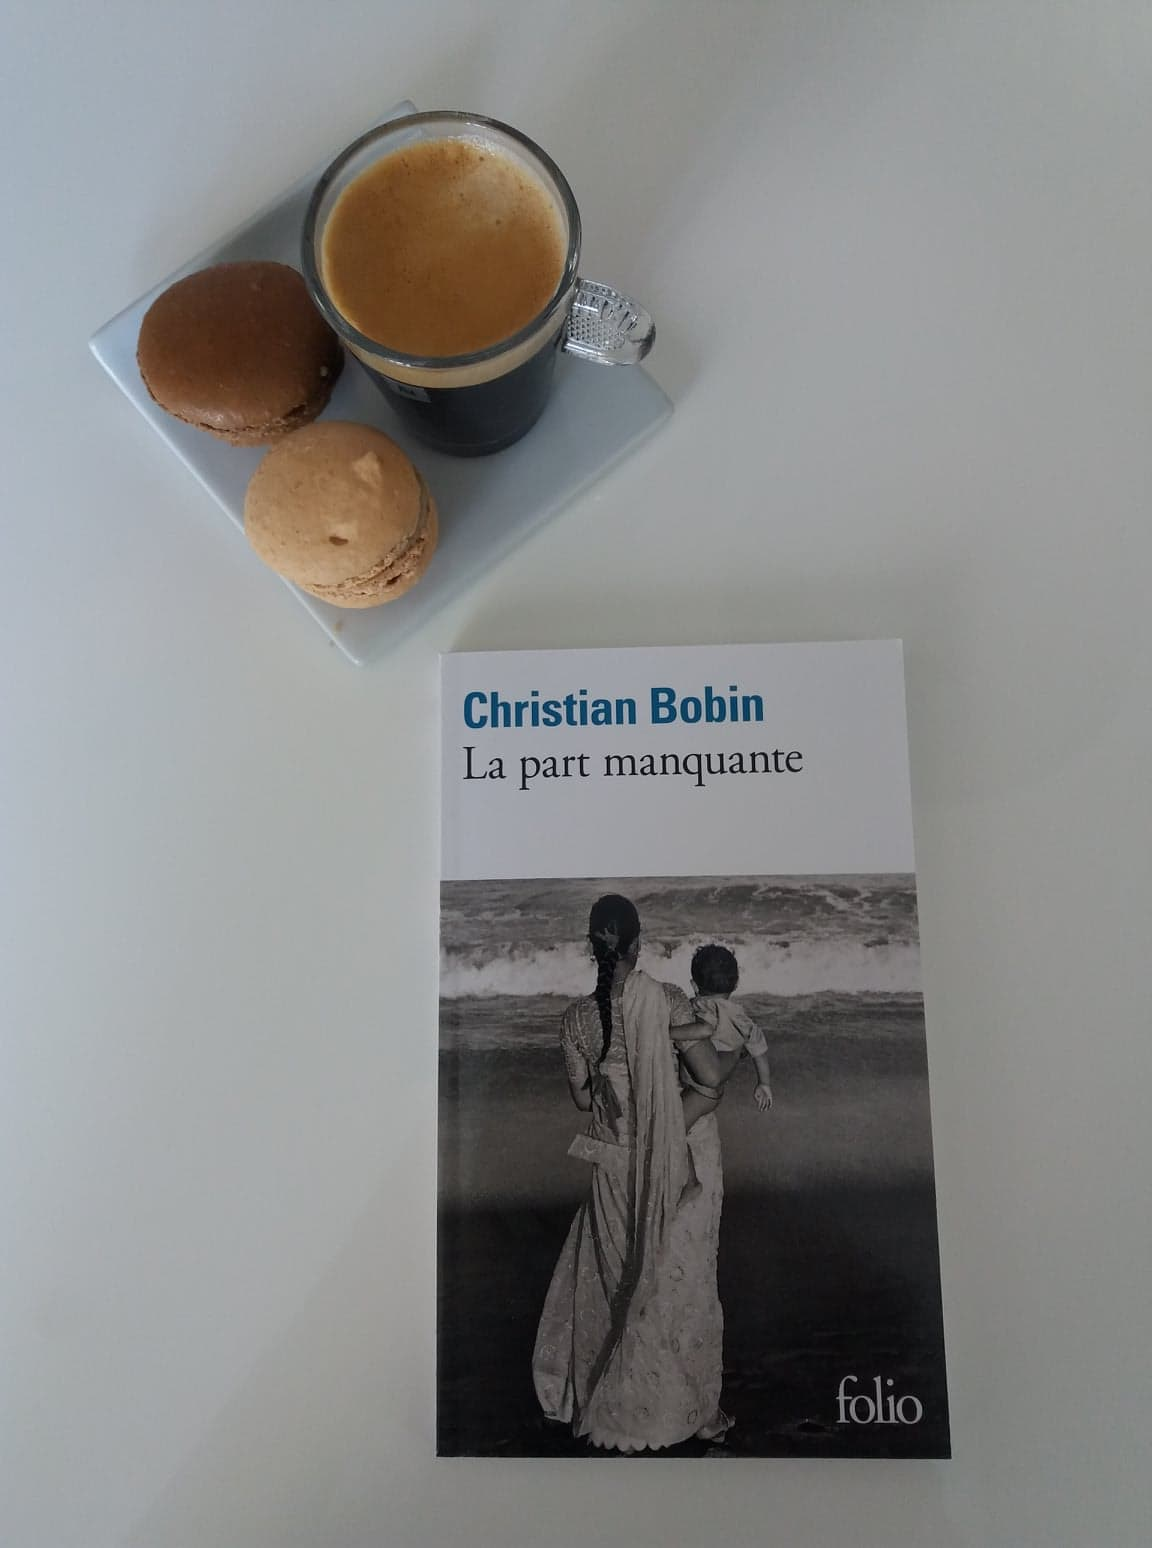 La part manquante – Christian Bobin